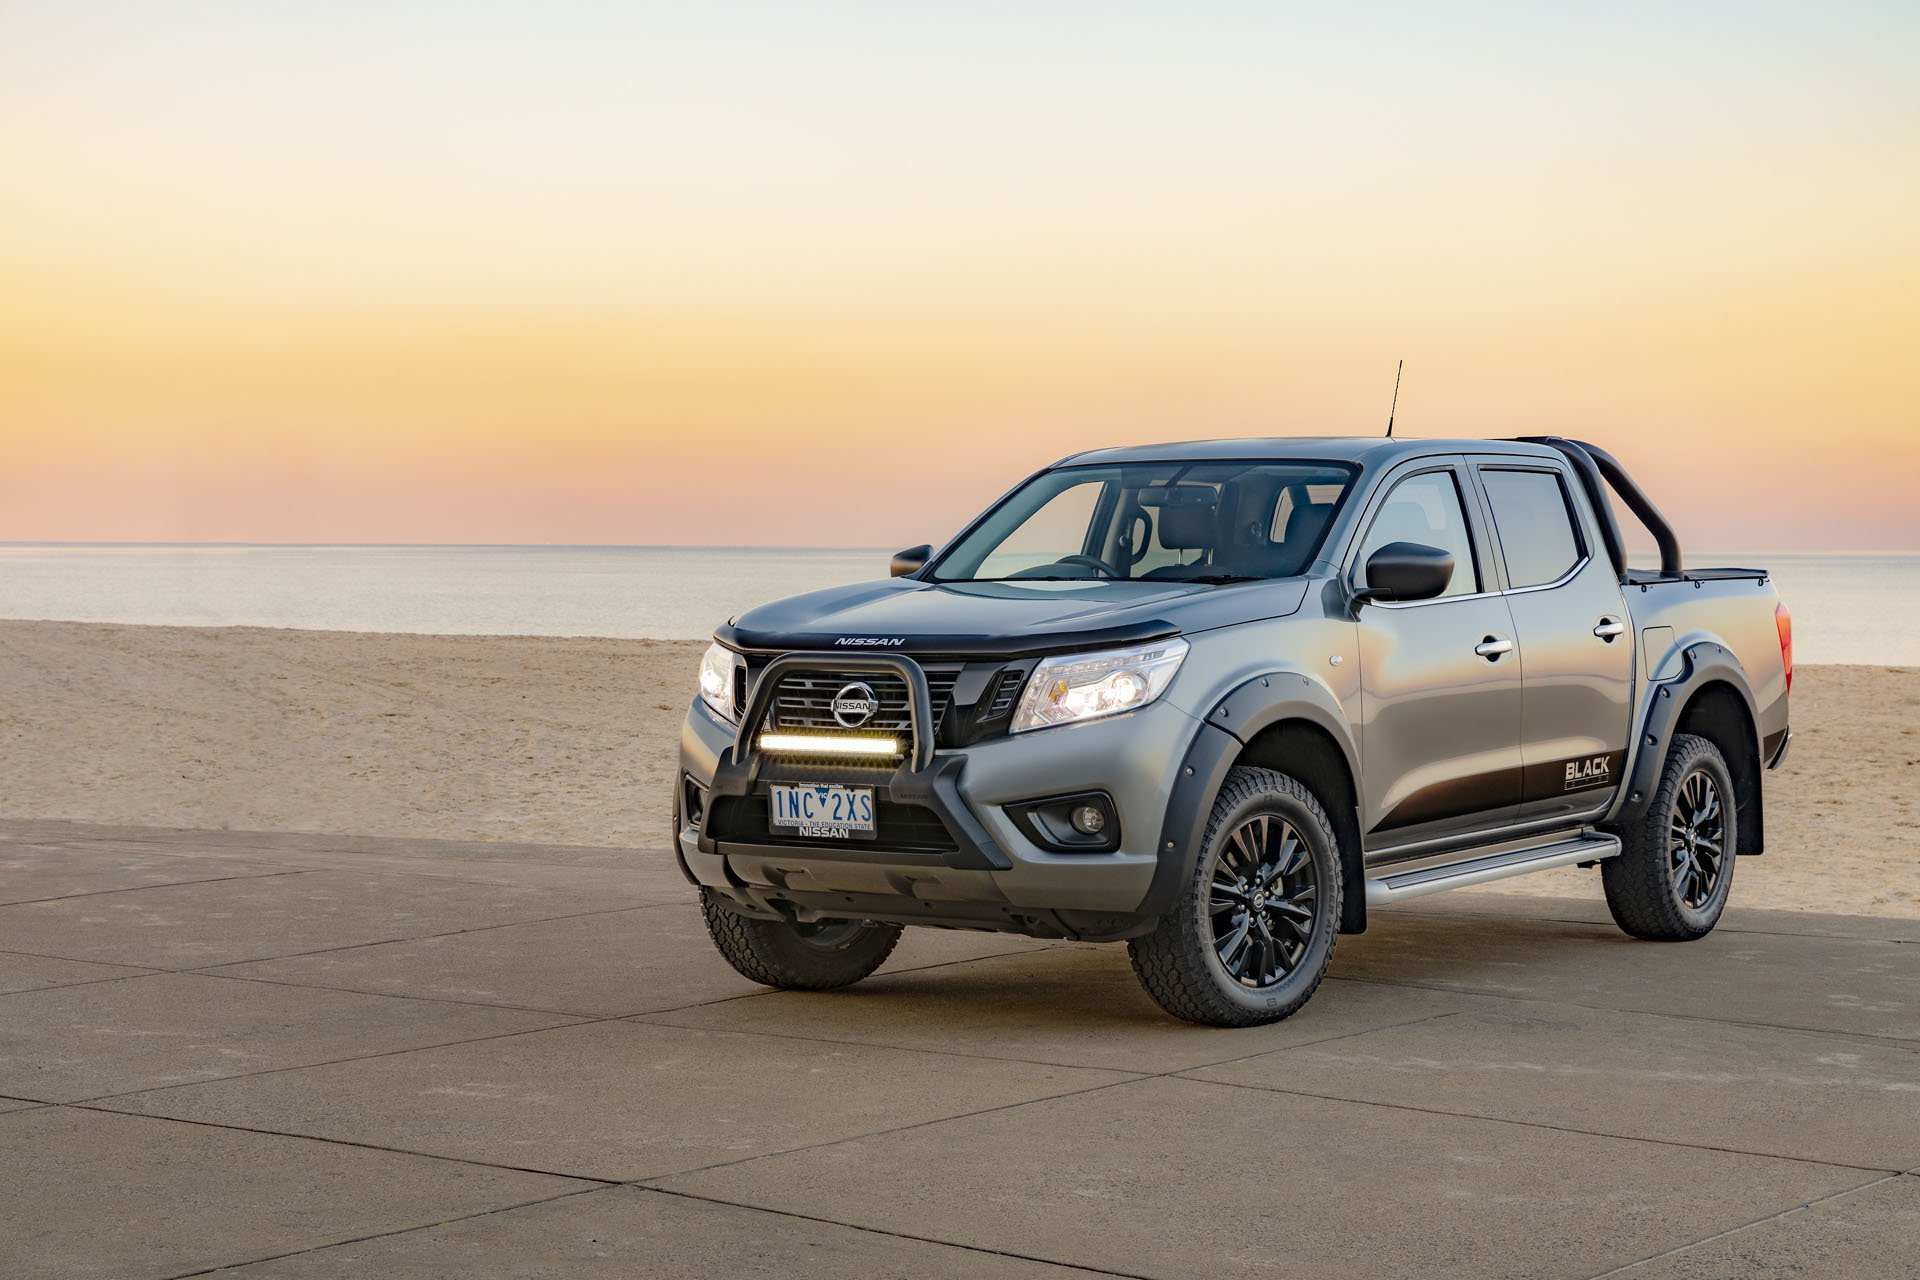 24 Great Nissan Frontier 2020 Interior Release for Nissan Frontier 2020 Interior